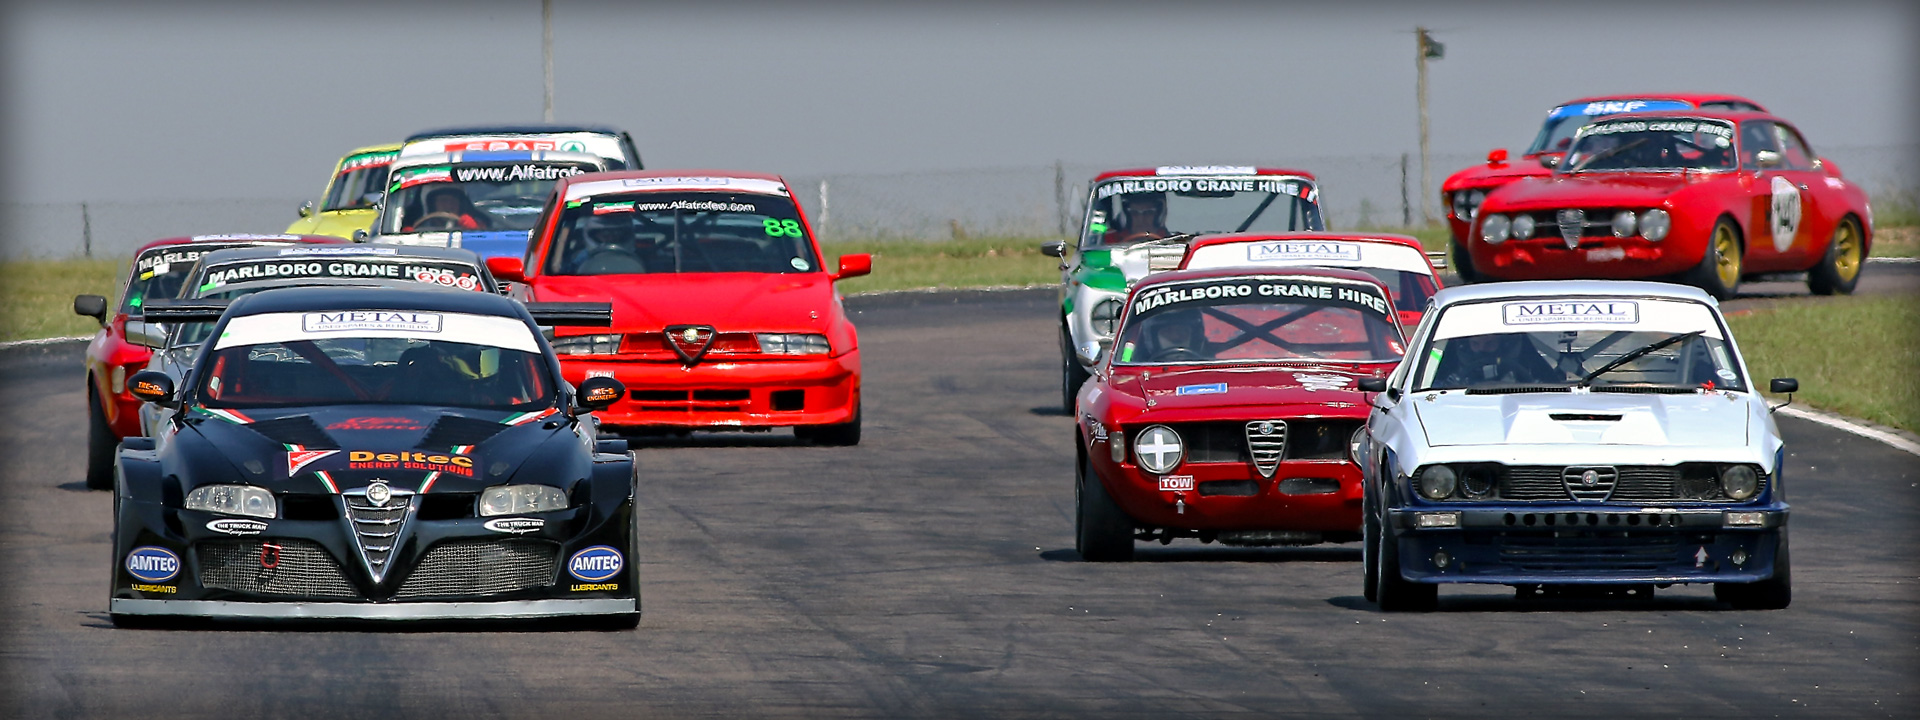 Photographs of the Historic Tour event on 2017-03-04 at Zwartkops Raceway